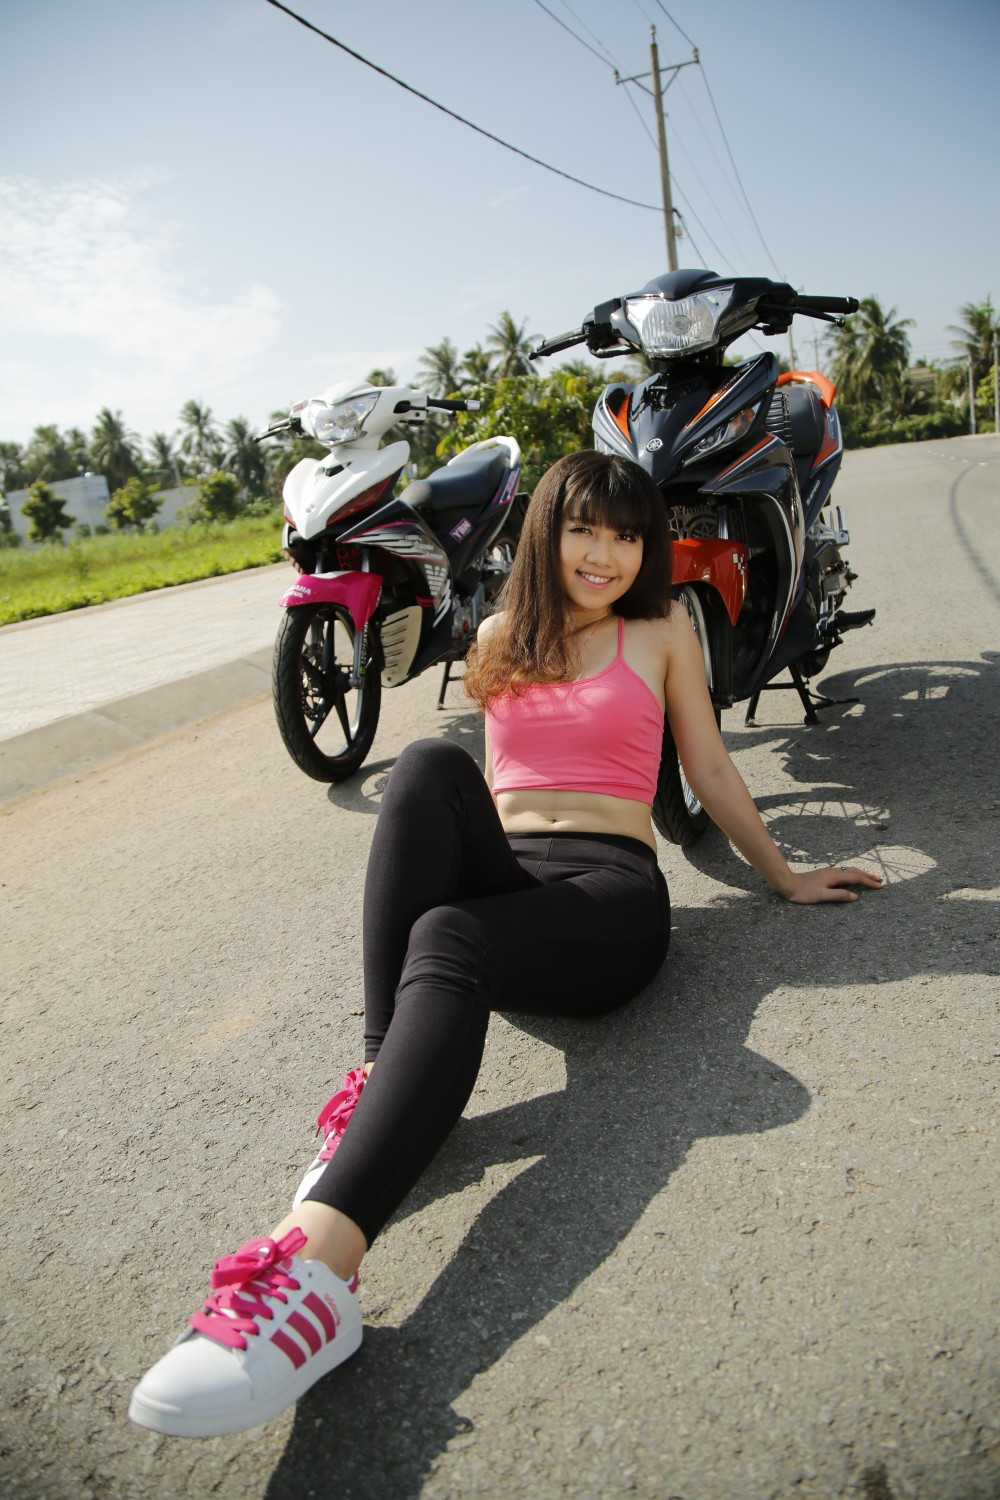 Racing Hot Girl And Exciter Bến Tre - 123992